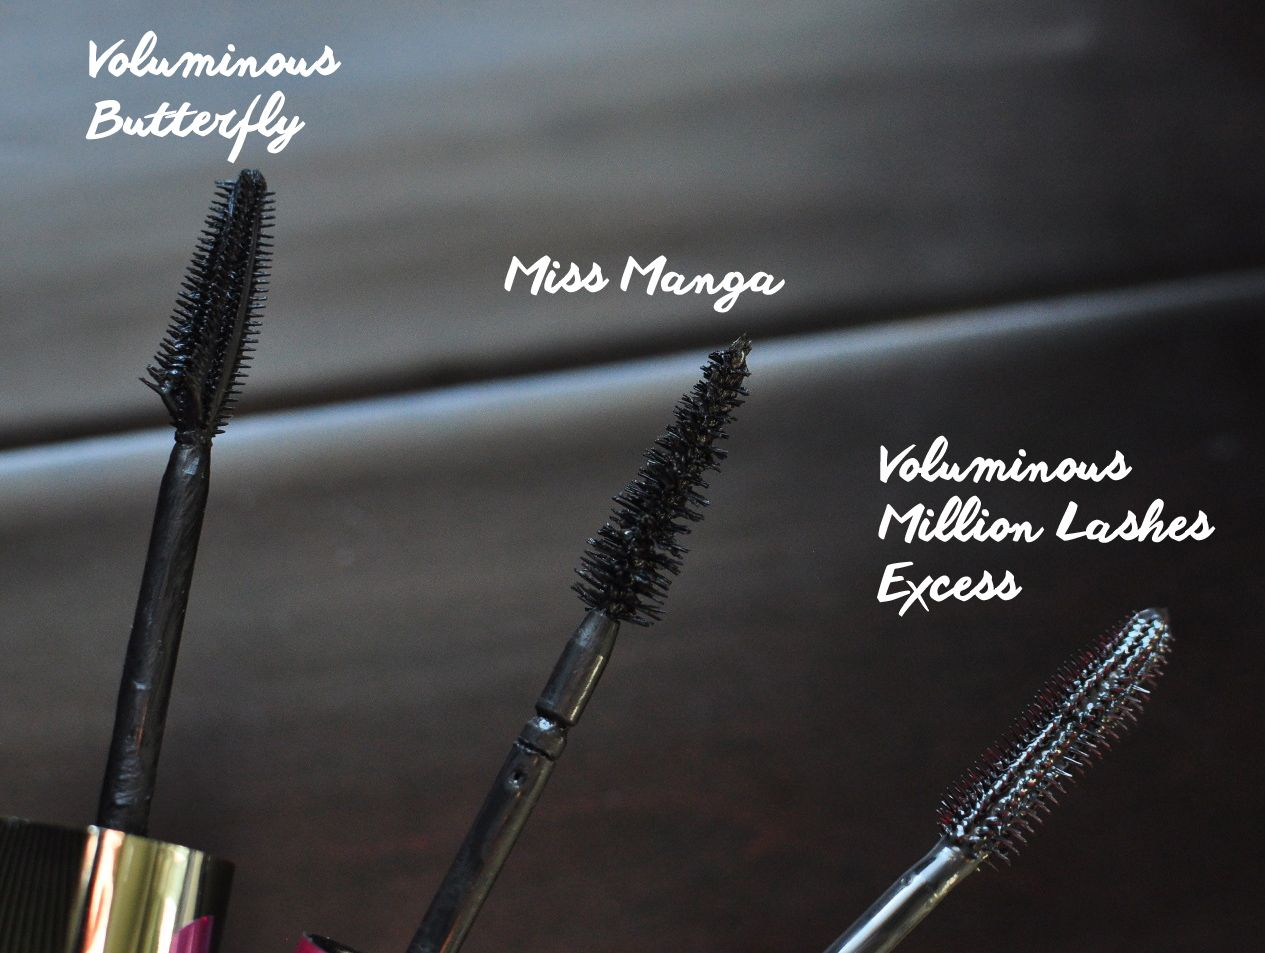 3f65ba441f8 L'Oreal Voluminous Million Lashes Excess Comparison to Voluminous Butterfly  and Miss Manga Mascara